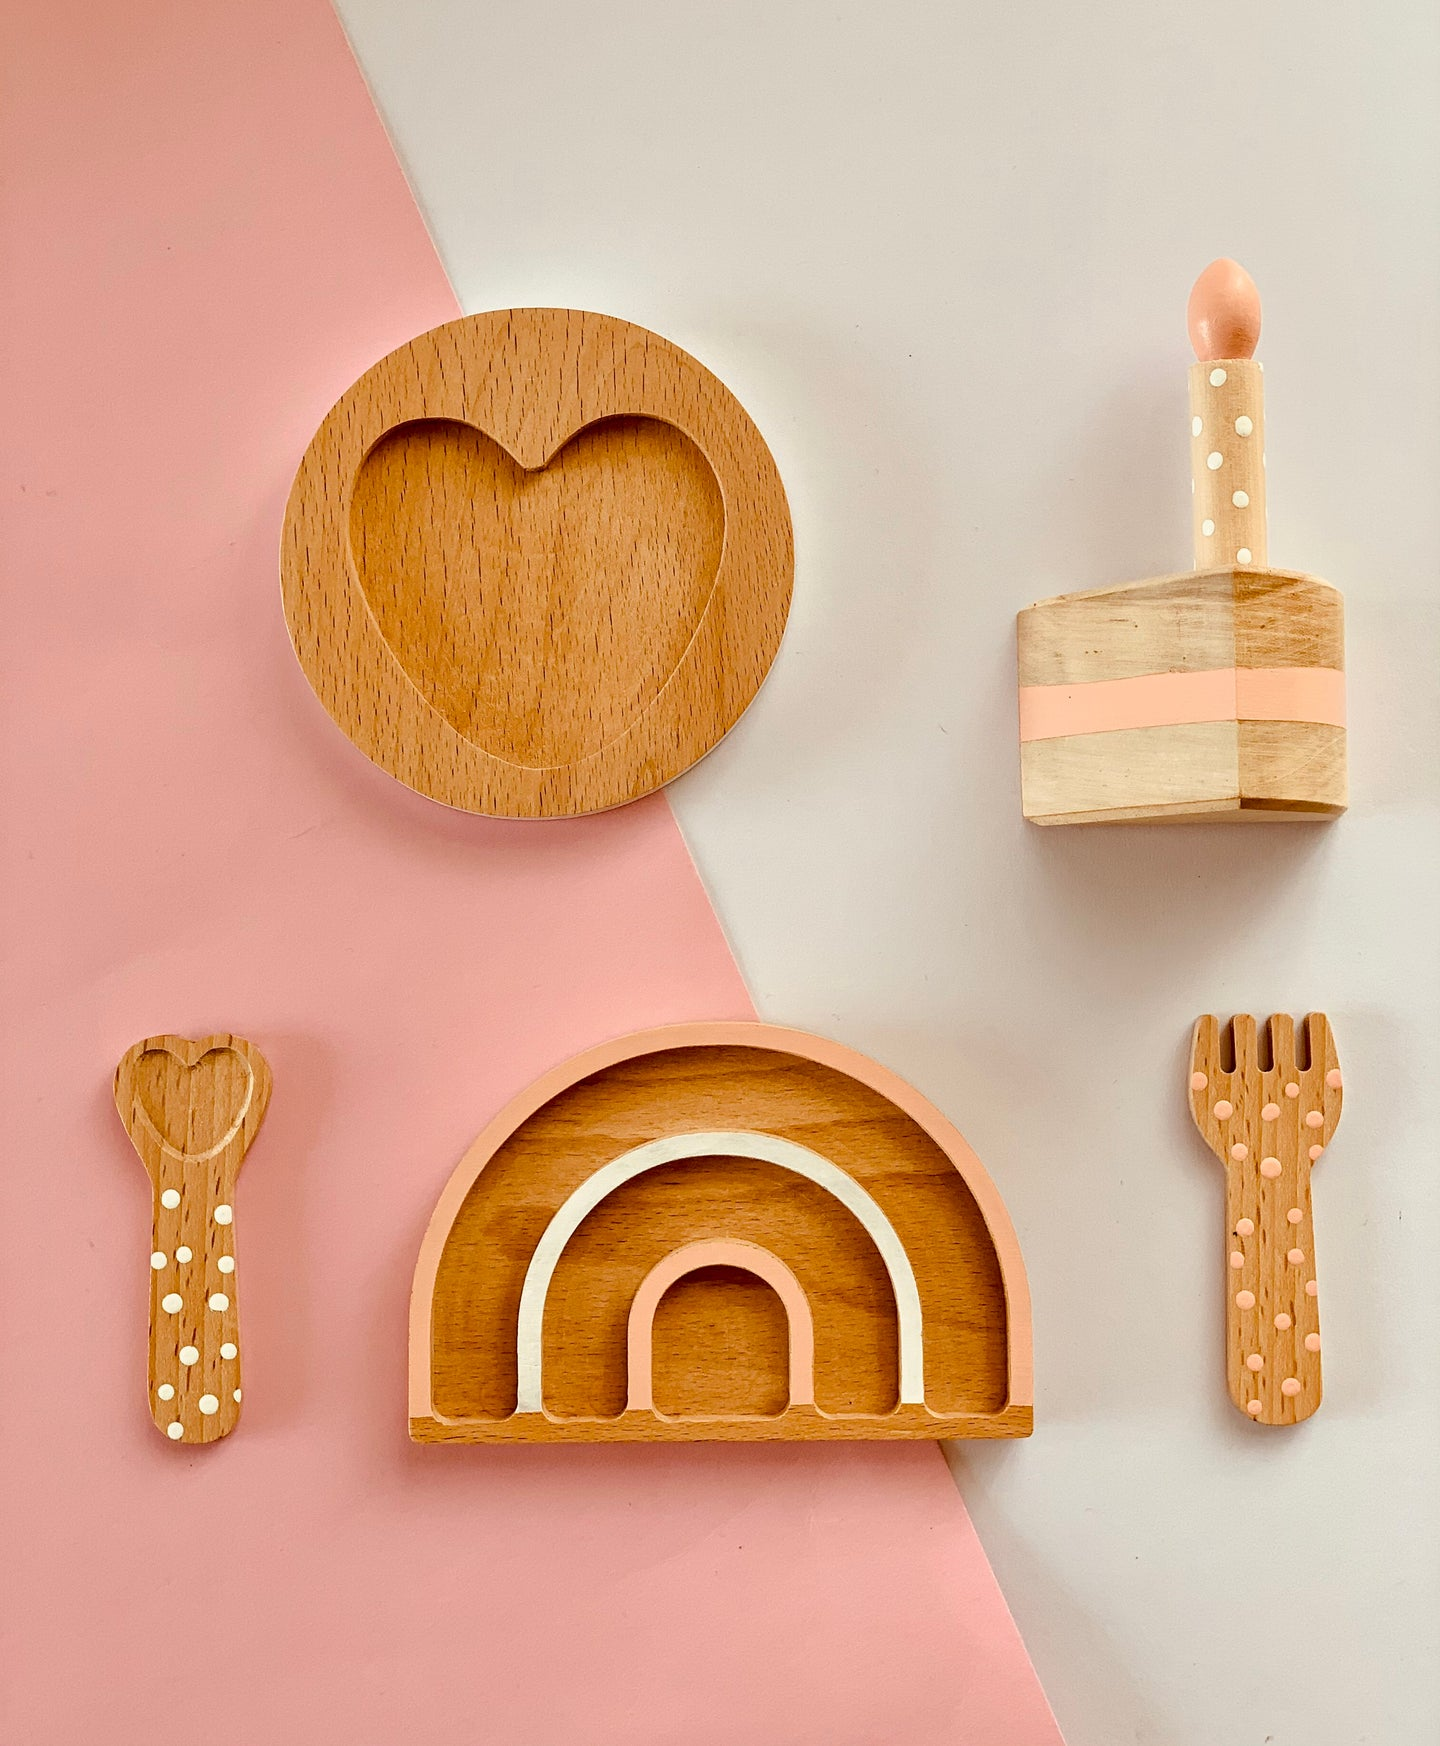 This wooden doll accessories set has an incredible delicacy and softness that we adore! Enhance their play time with our beautiful handcrafted in natural wood dolls Accessories Set.